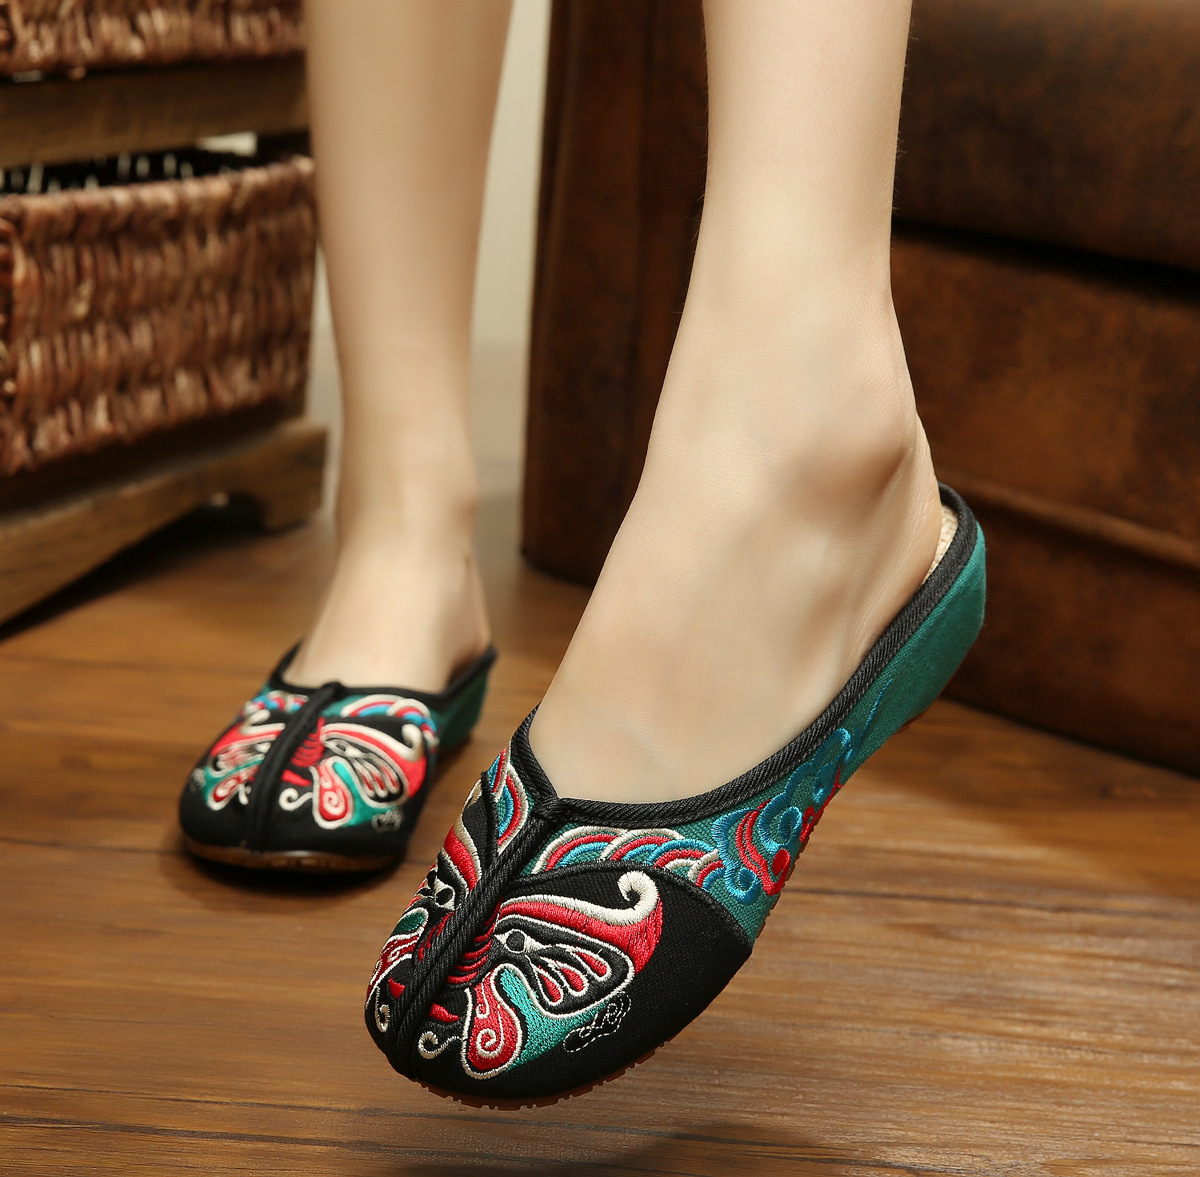 Facebook Embroidery Slippers Summer Fashion Women Sandals Chinese Casual Slippers 36-41 Sandals Shoes Woman SMYXHX-D0111<br><br>Aliexpress